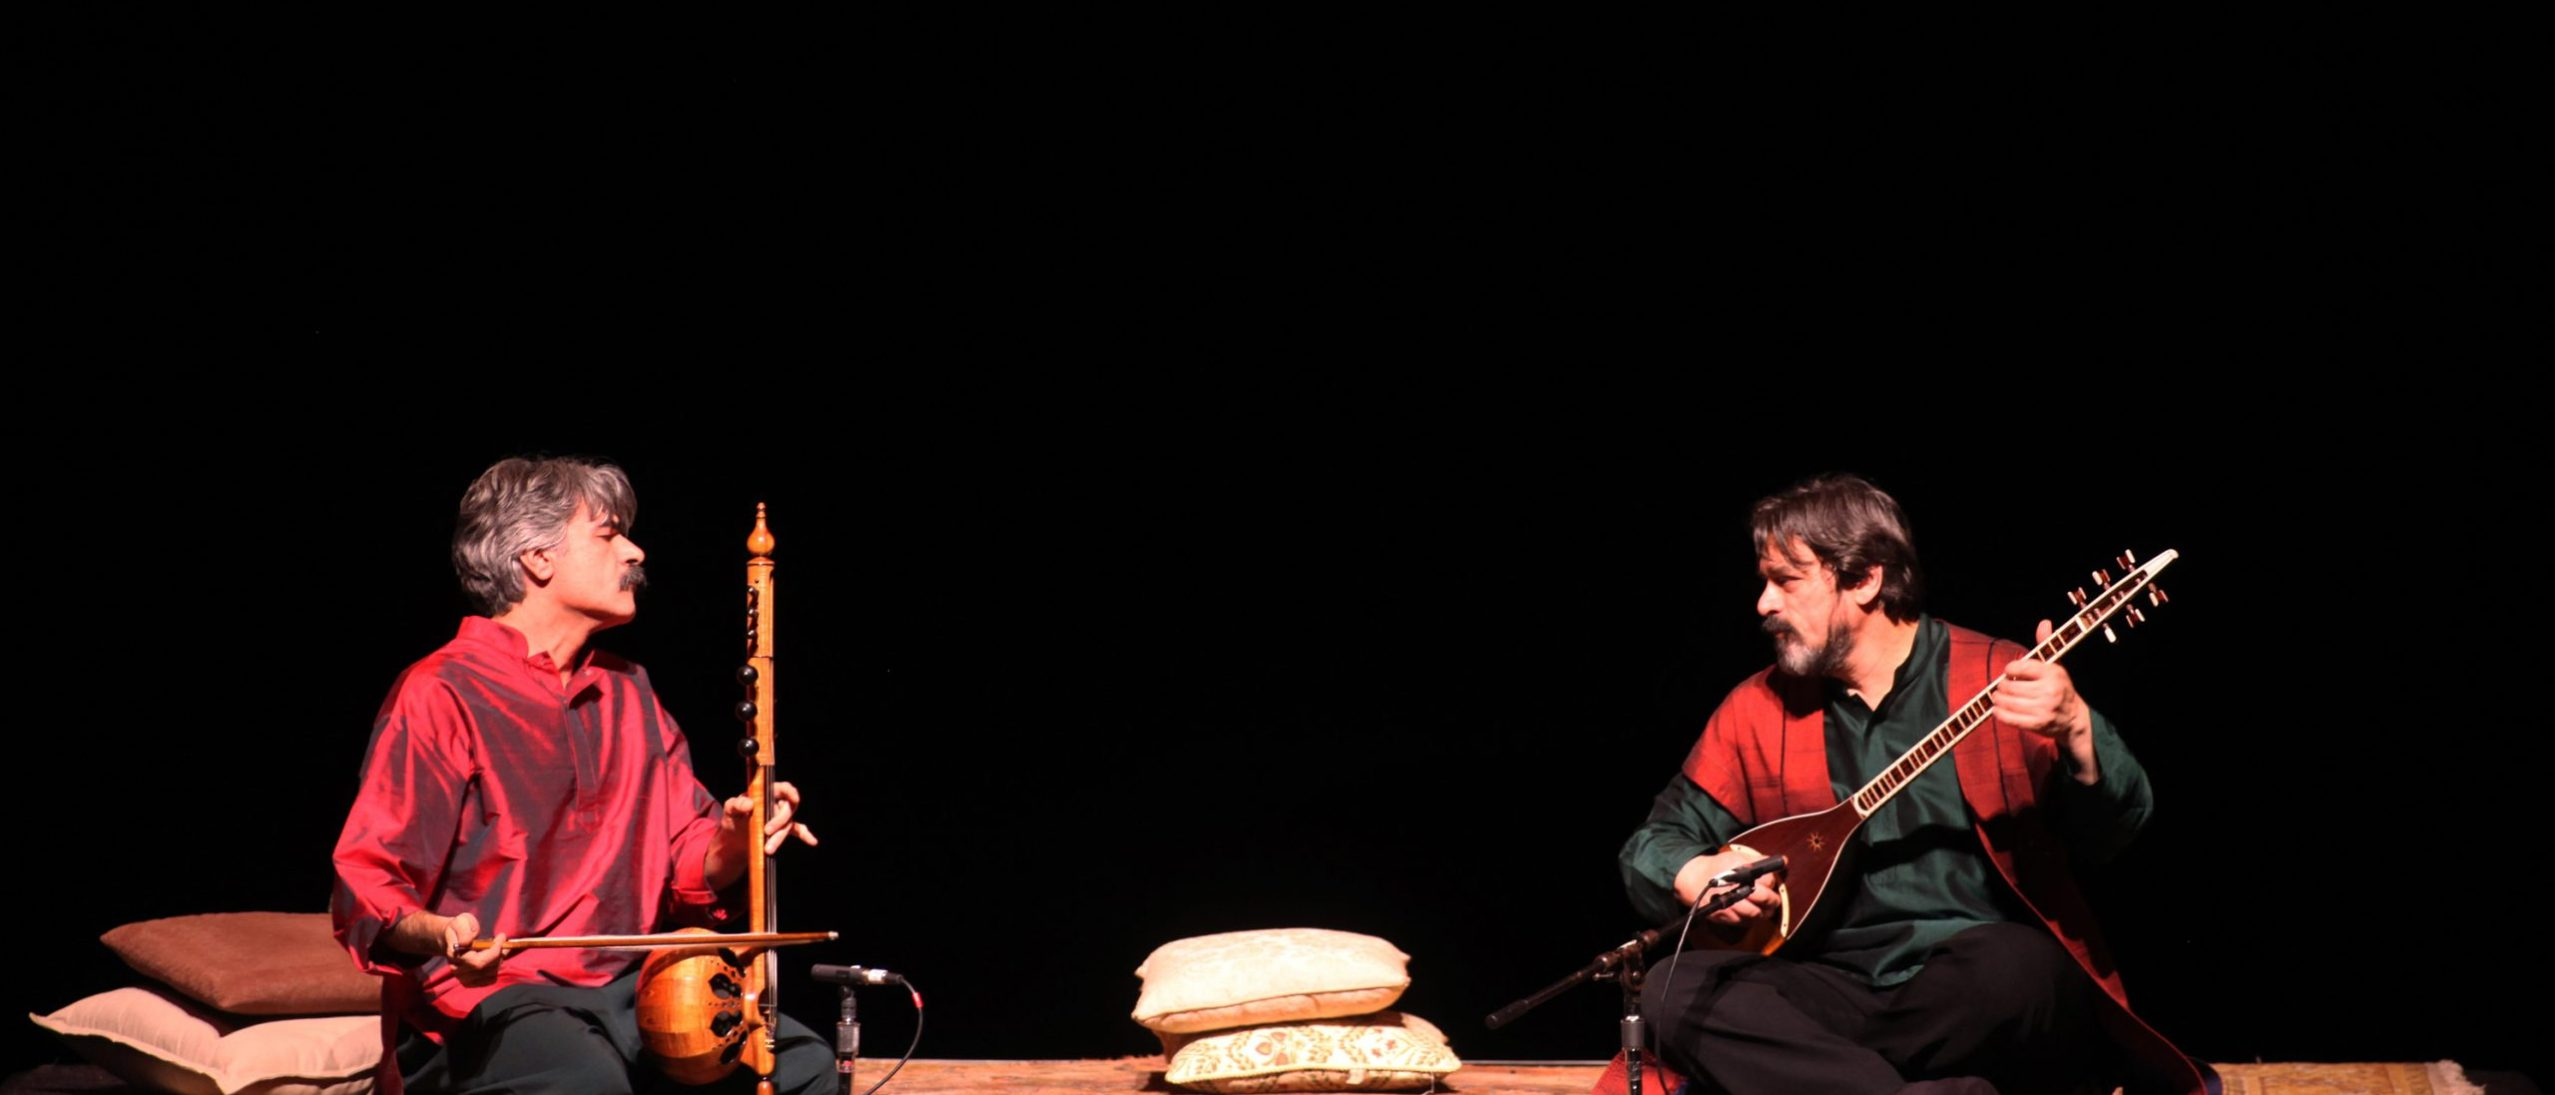 Two musicians seated on the floor, playing kamanchech (Persian fiddle) and tar (Persian lute)